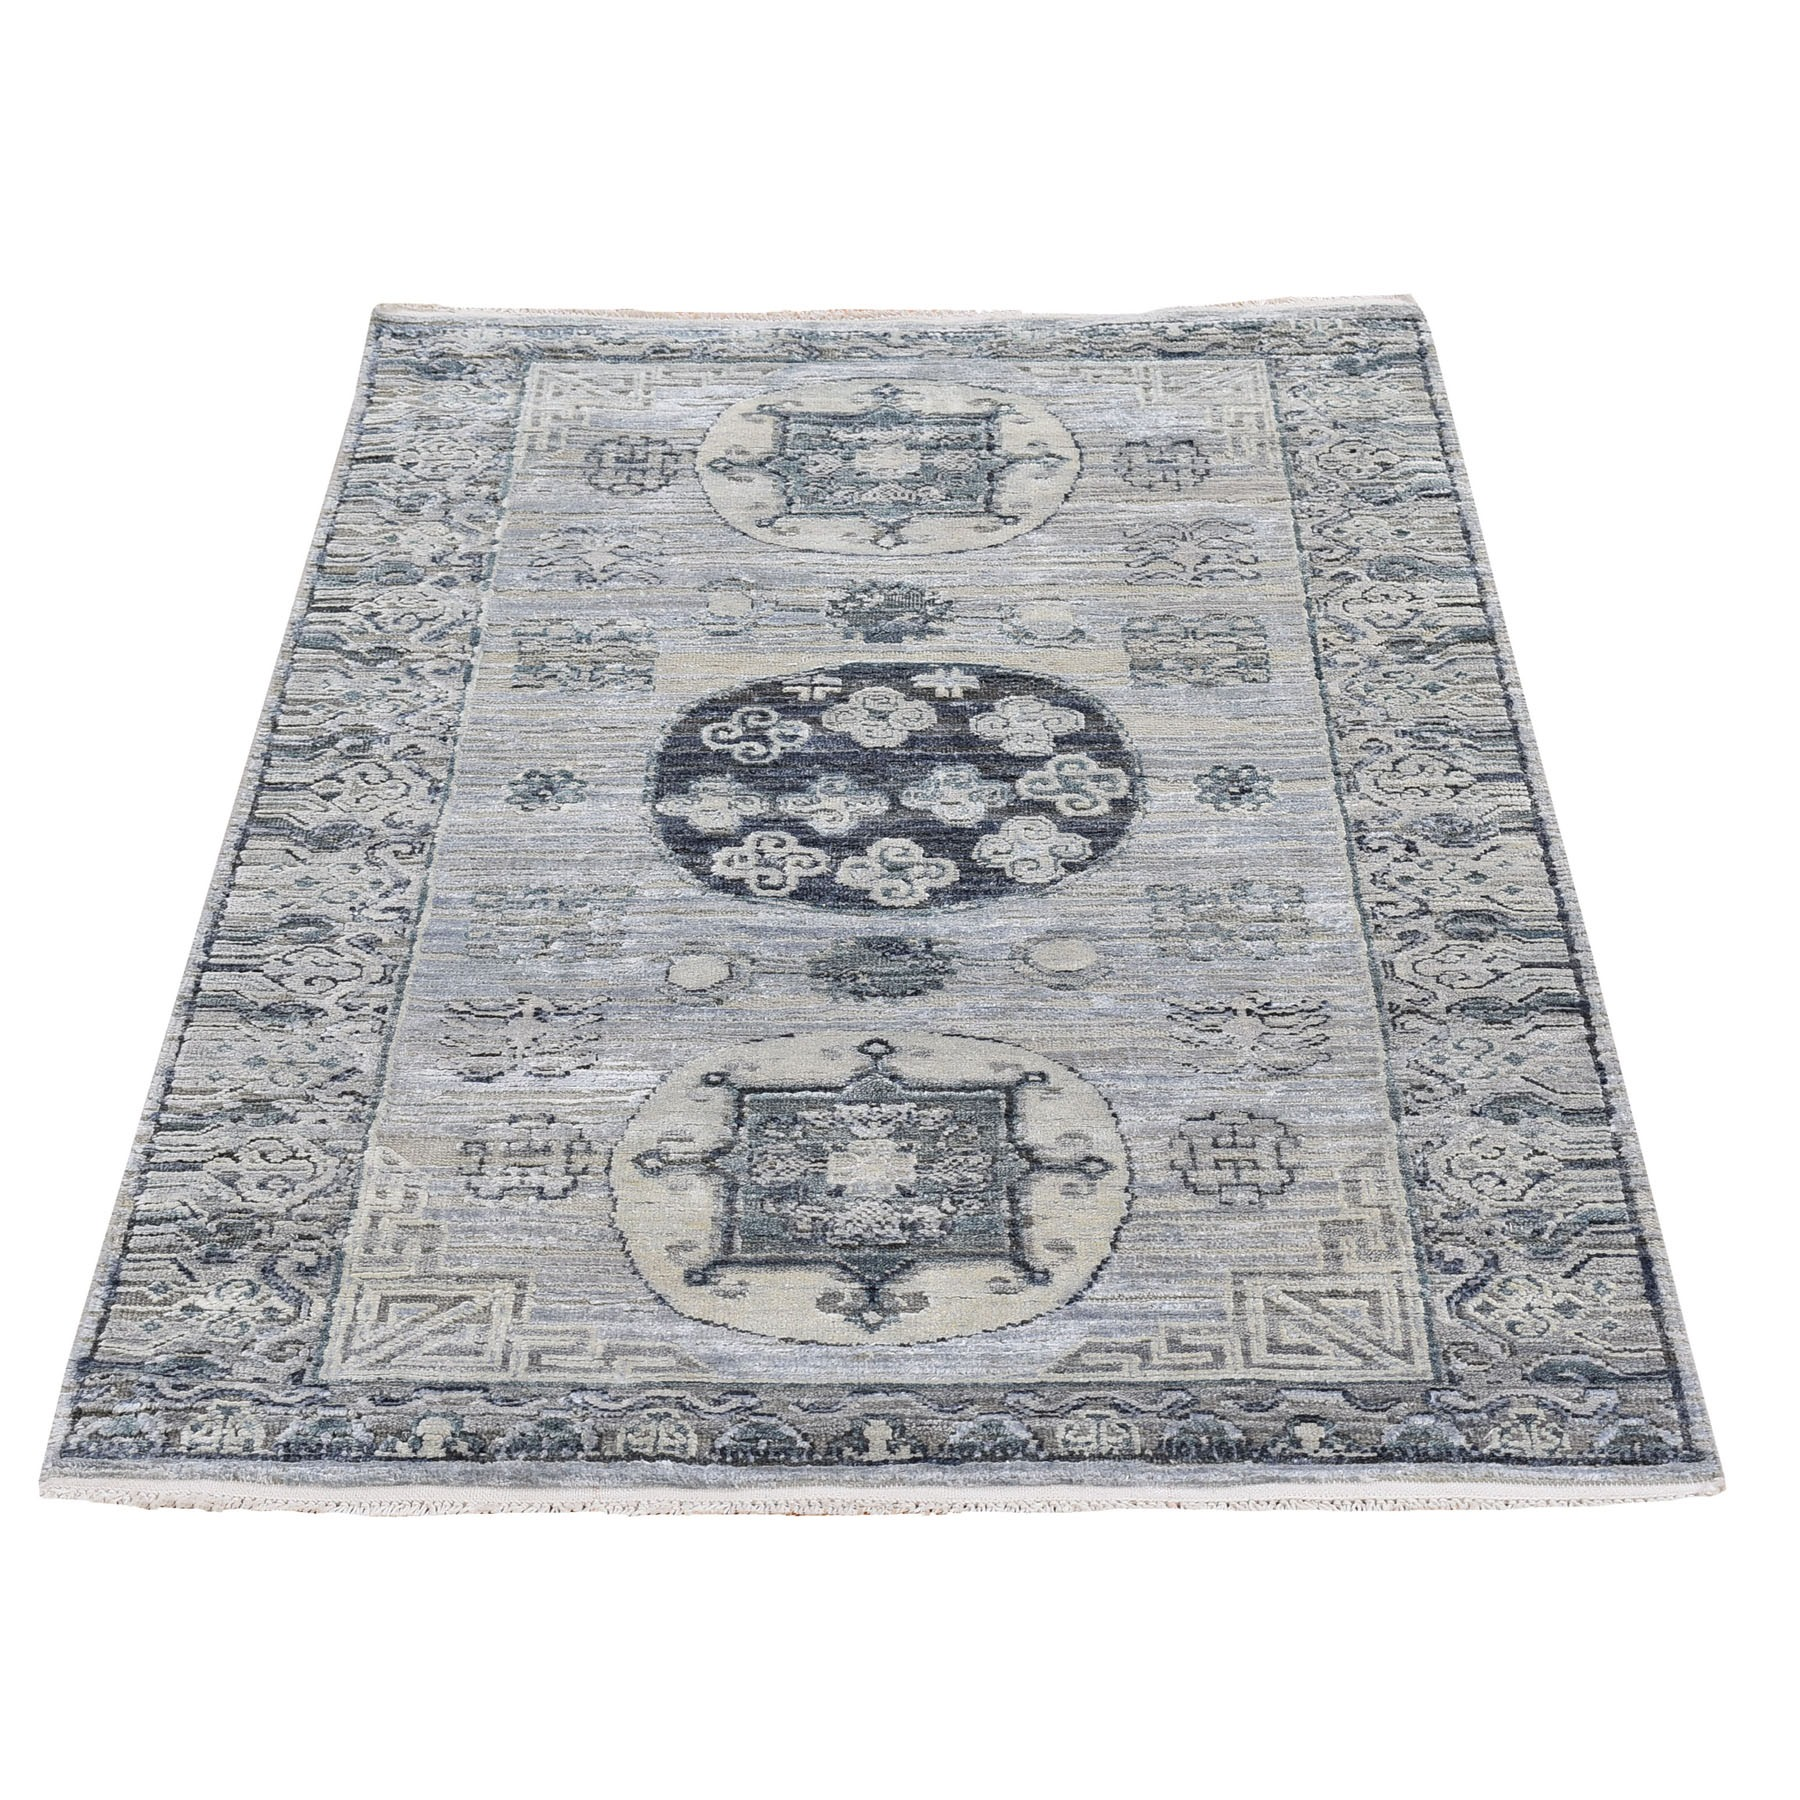 Wool and Real Silk Collection Hand Knotted Grey Rug No: 1119910